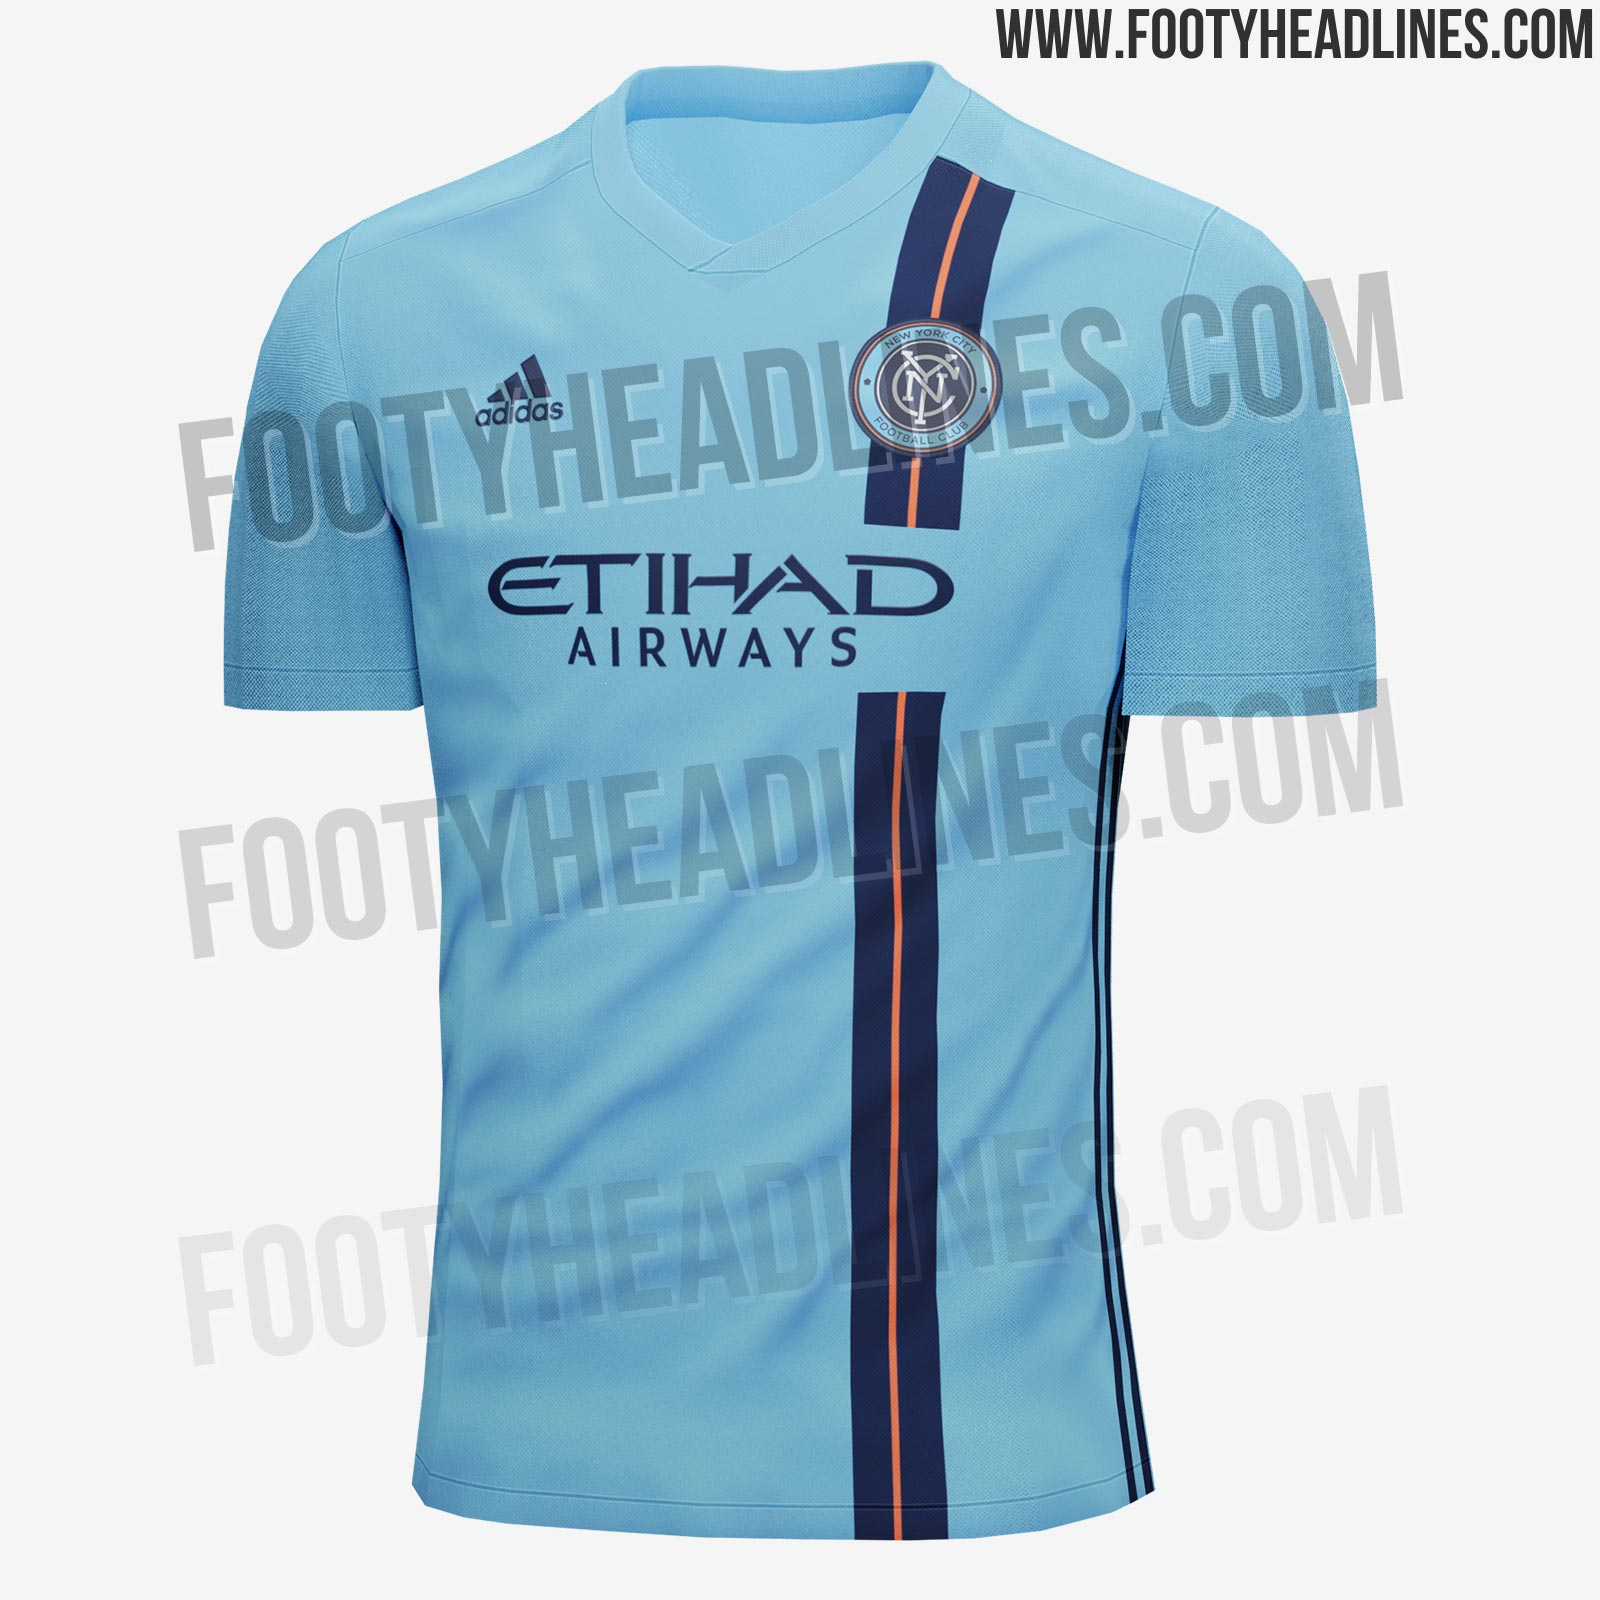 36058697a3a 2019 MLS Jersey Thread